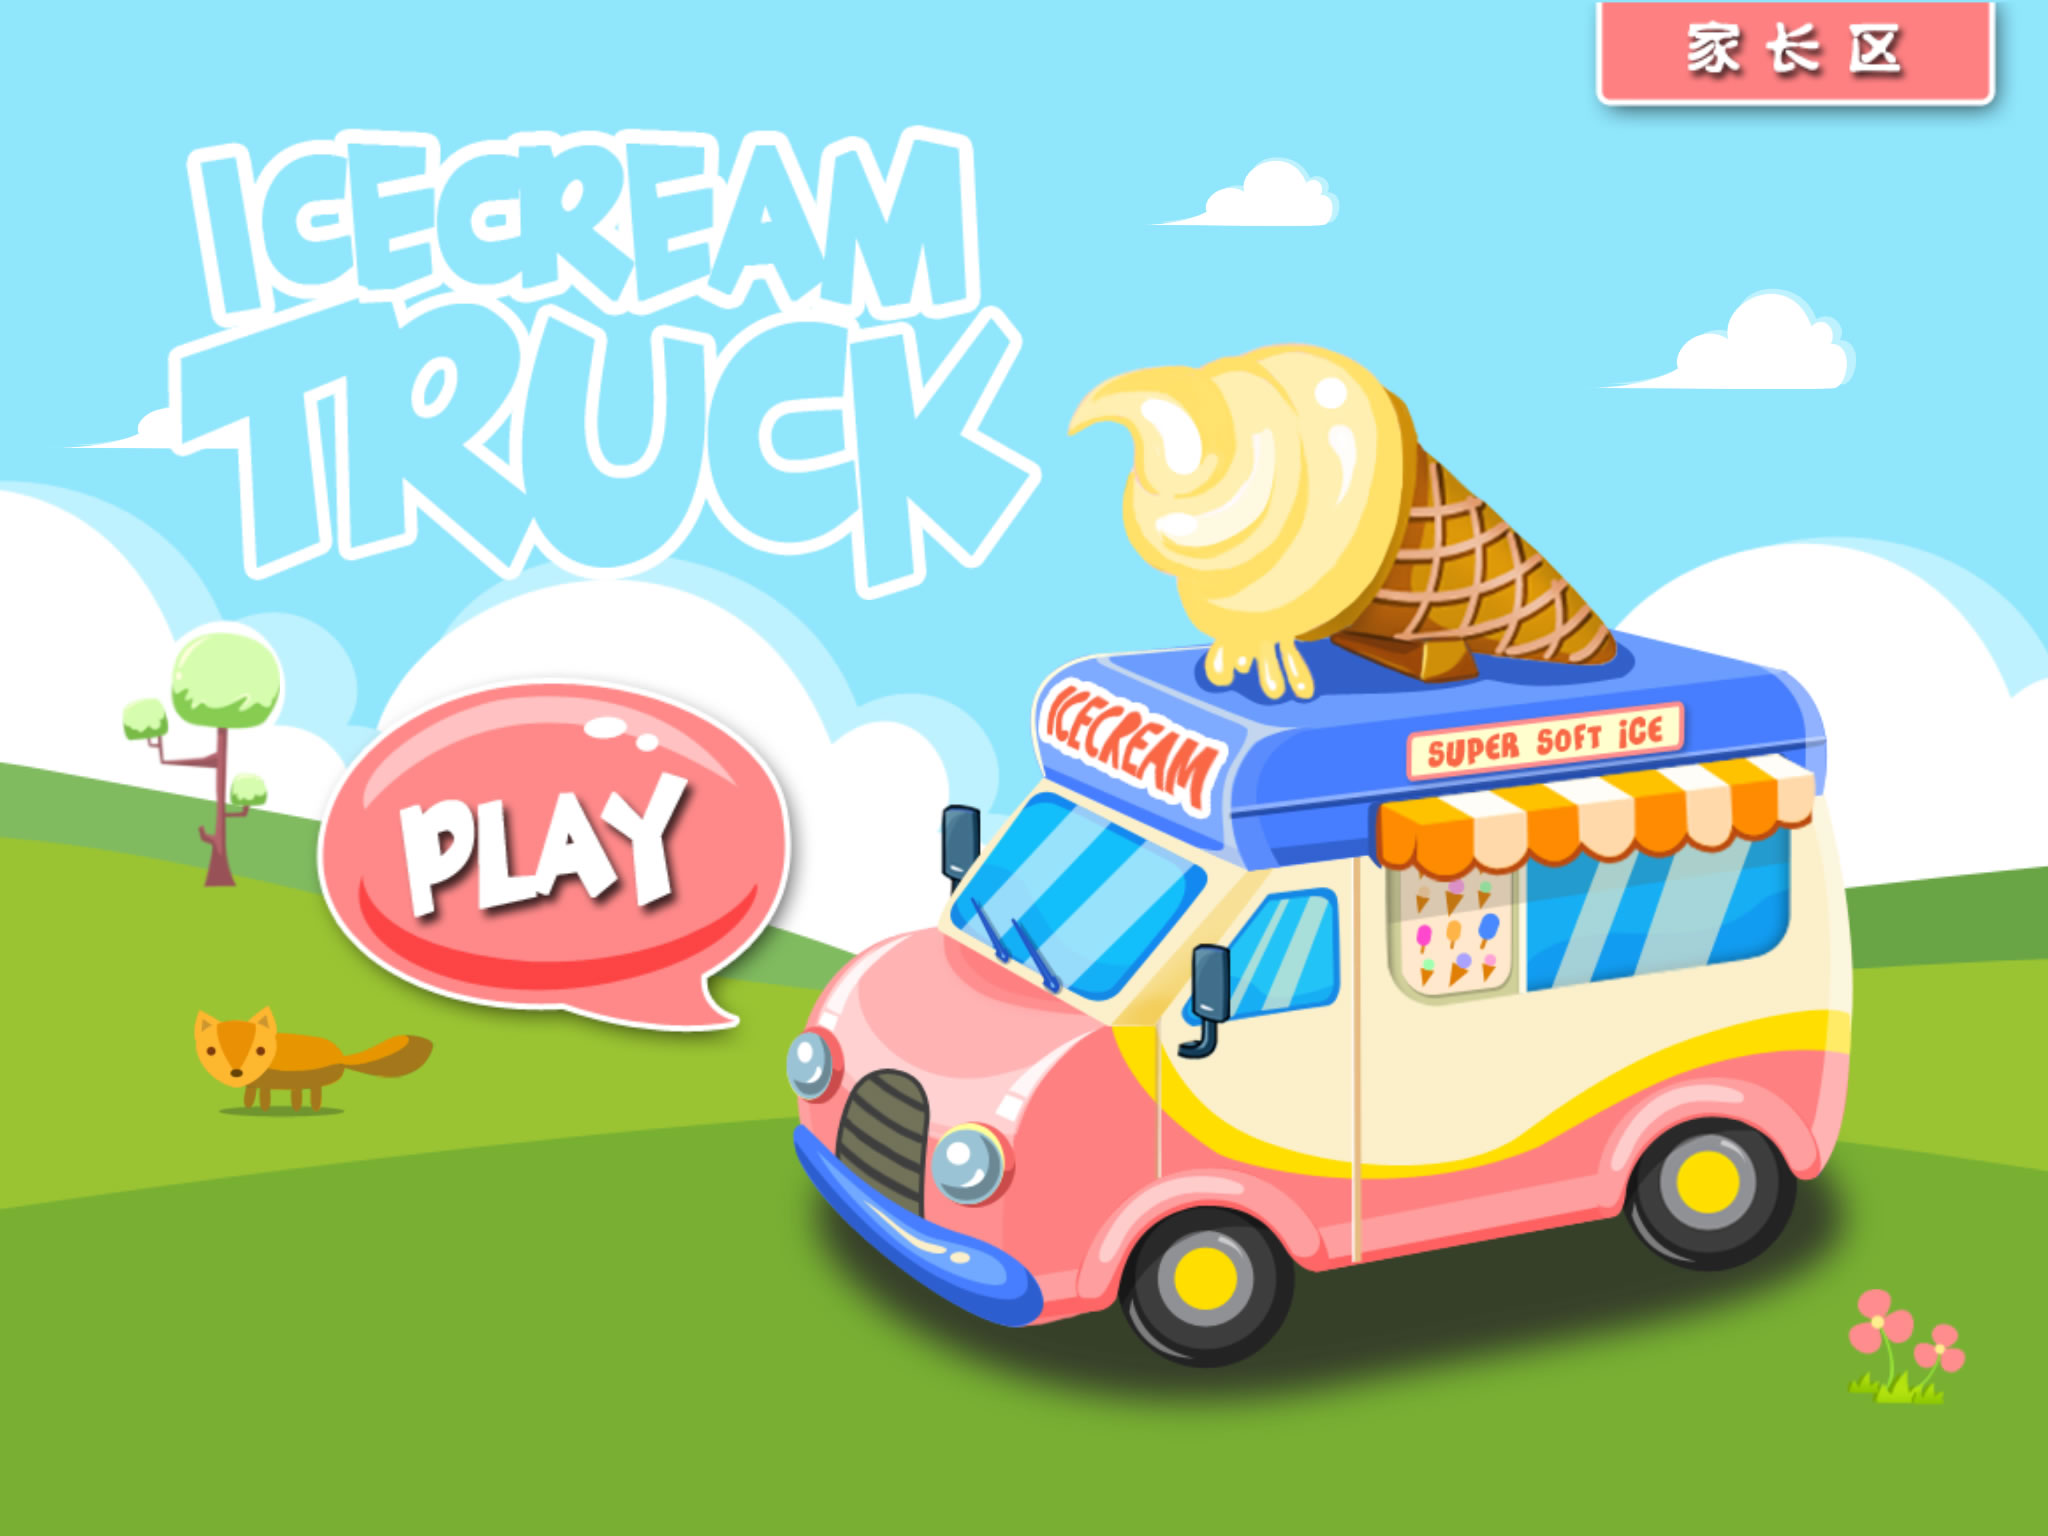 Ice Cream Truck (Mandarin Chinese Pronunciation) - 雪糕车 - 宝宝认知拼图系列游戏